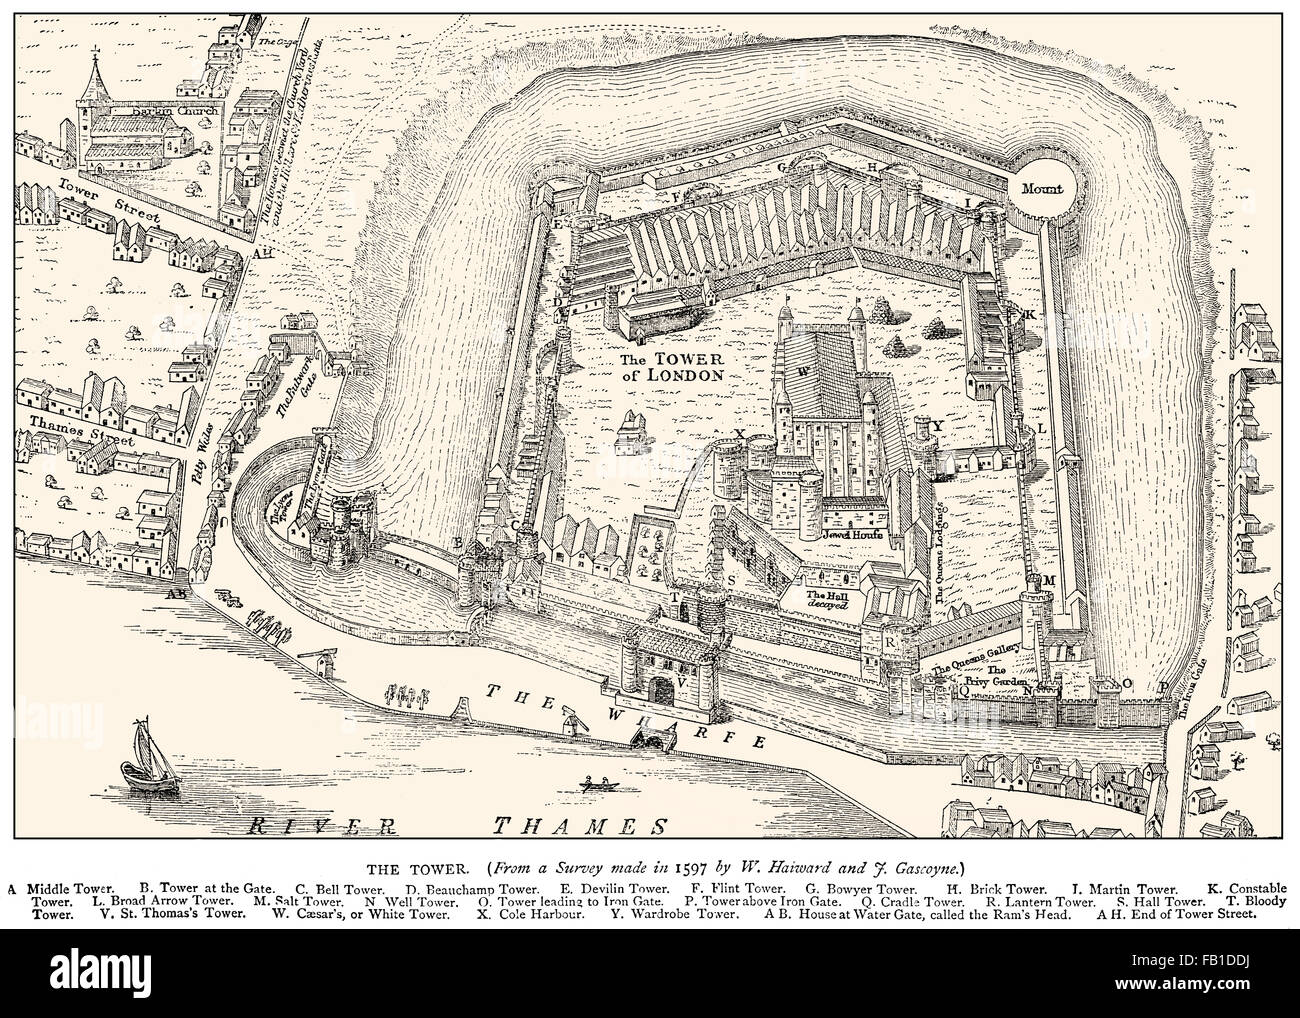 Tower of London, Her Majesty's Royal Palace and Fortress, historic castle on the north bank of the River Thames, - Stock Image